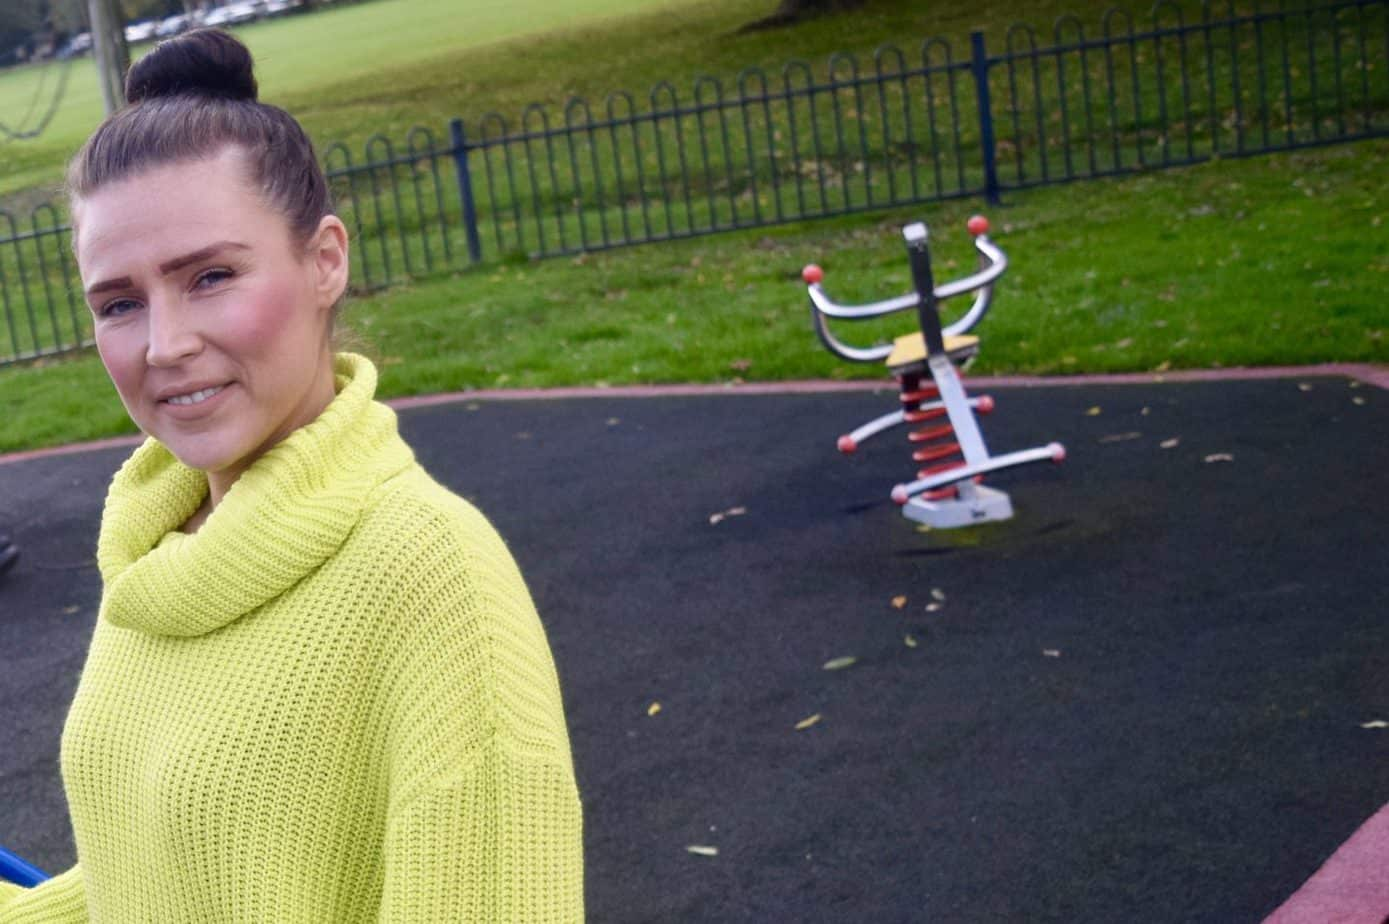 At the playground with me smiling at the camera showcasing Femme Luxe autumn wear jumper